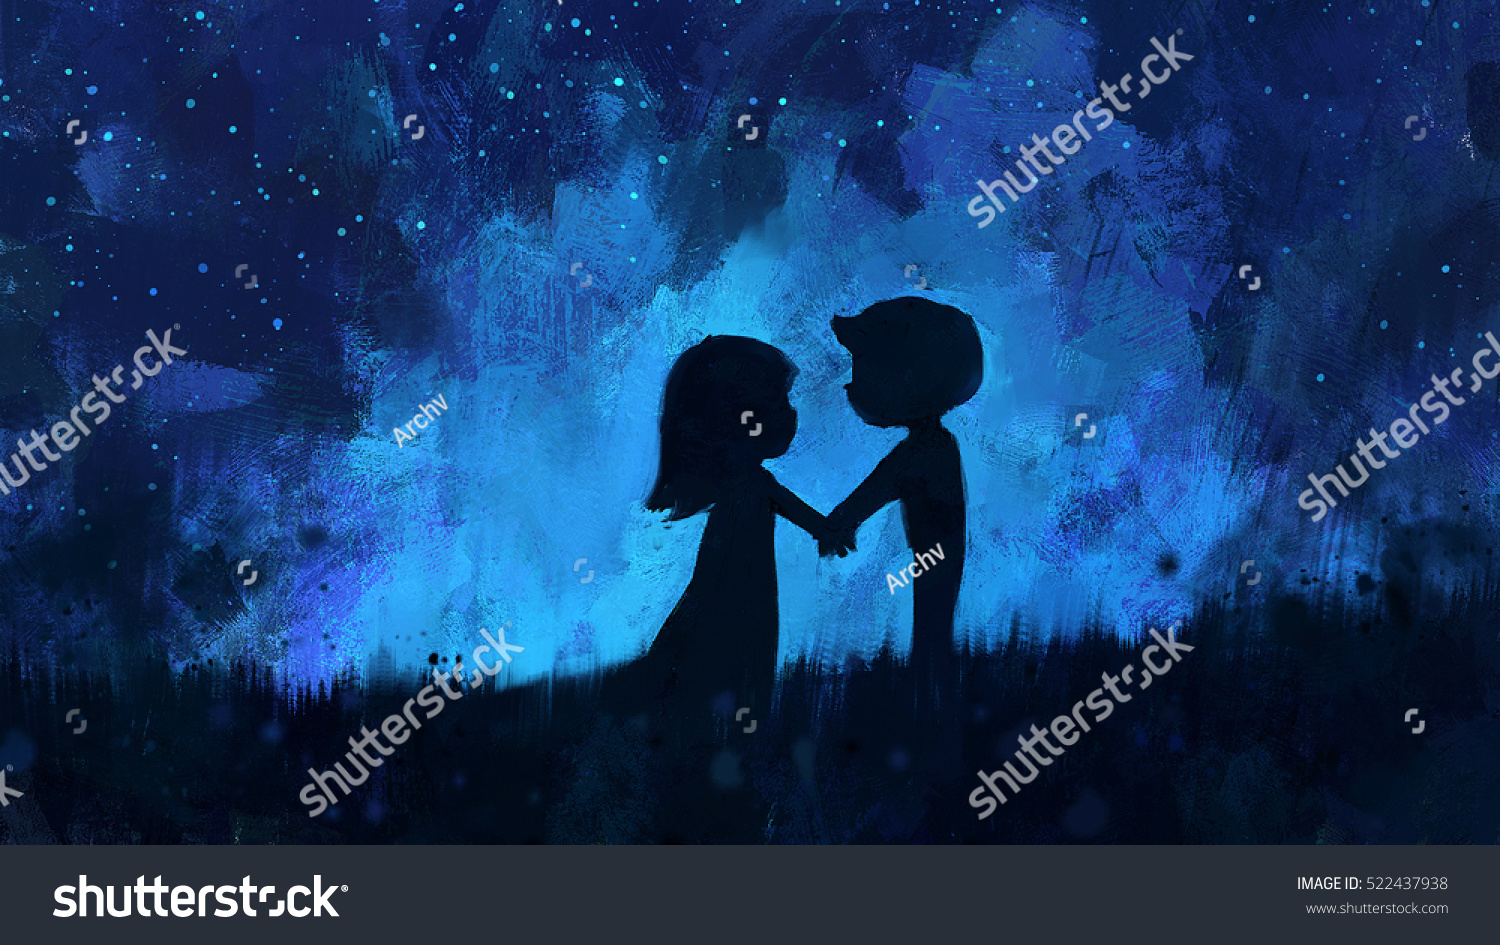 Digital painting of young couple in love holding hands in night sky acrylic sketched on